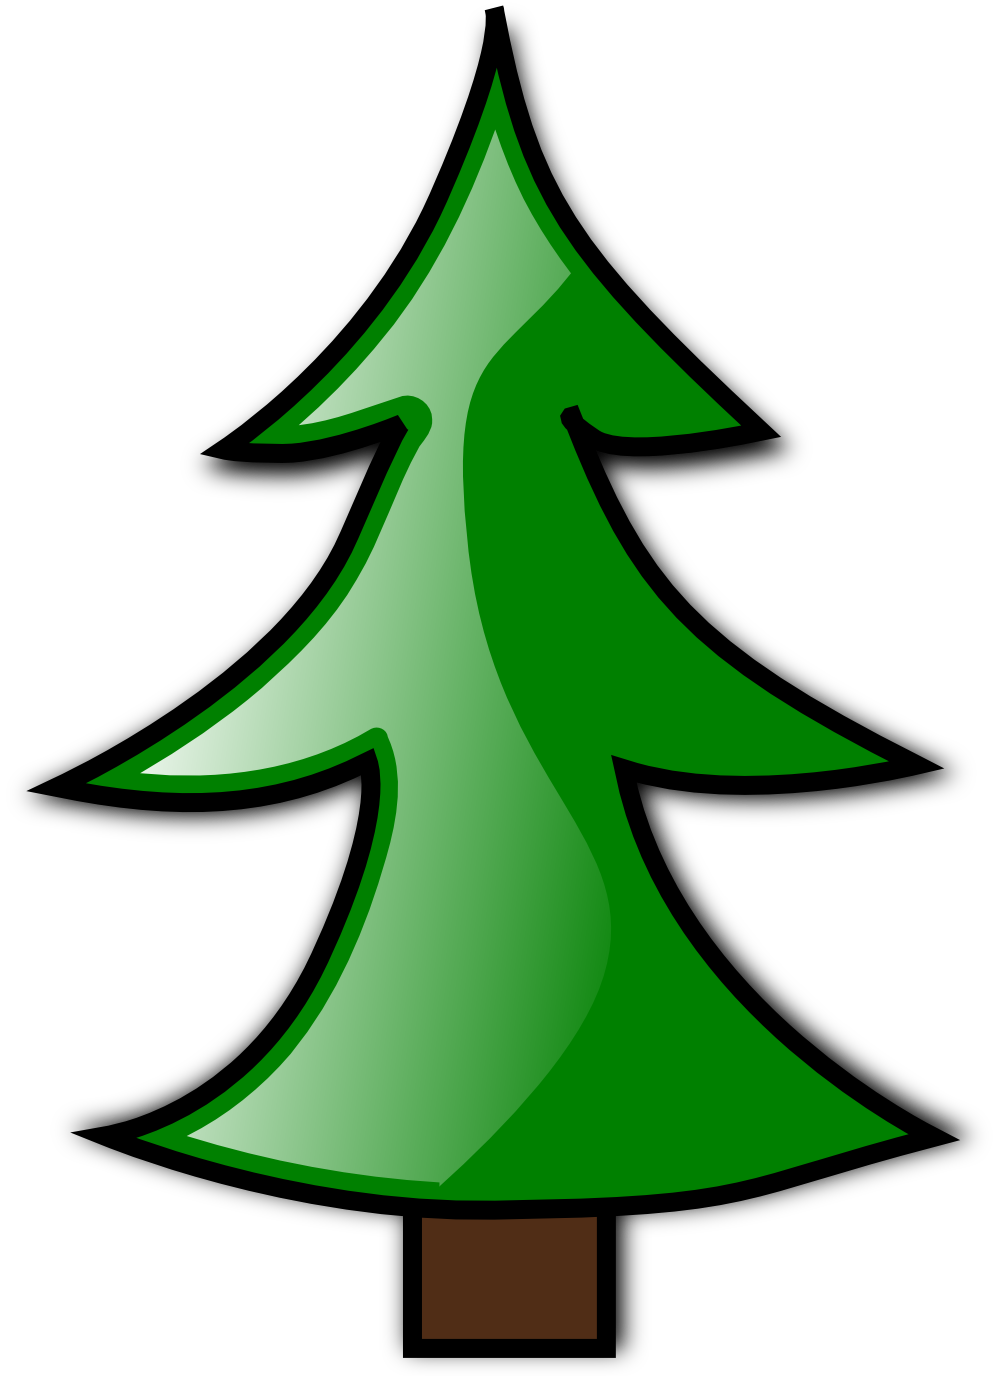 Costume Clipart Christmas Tree Costume Christmas Tree Transparent Free For Download On Webstockreview 2021 Polish your personal project or design with these cartoon christmas tree transparent png images, make it even more personalized and more attractive. costume clipart christmas tree costume